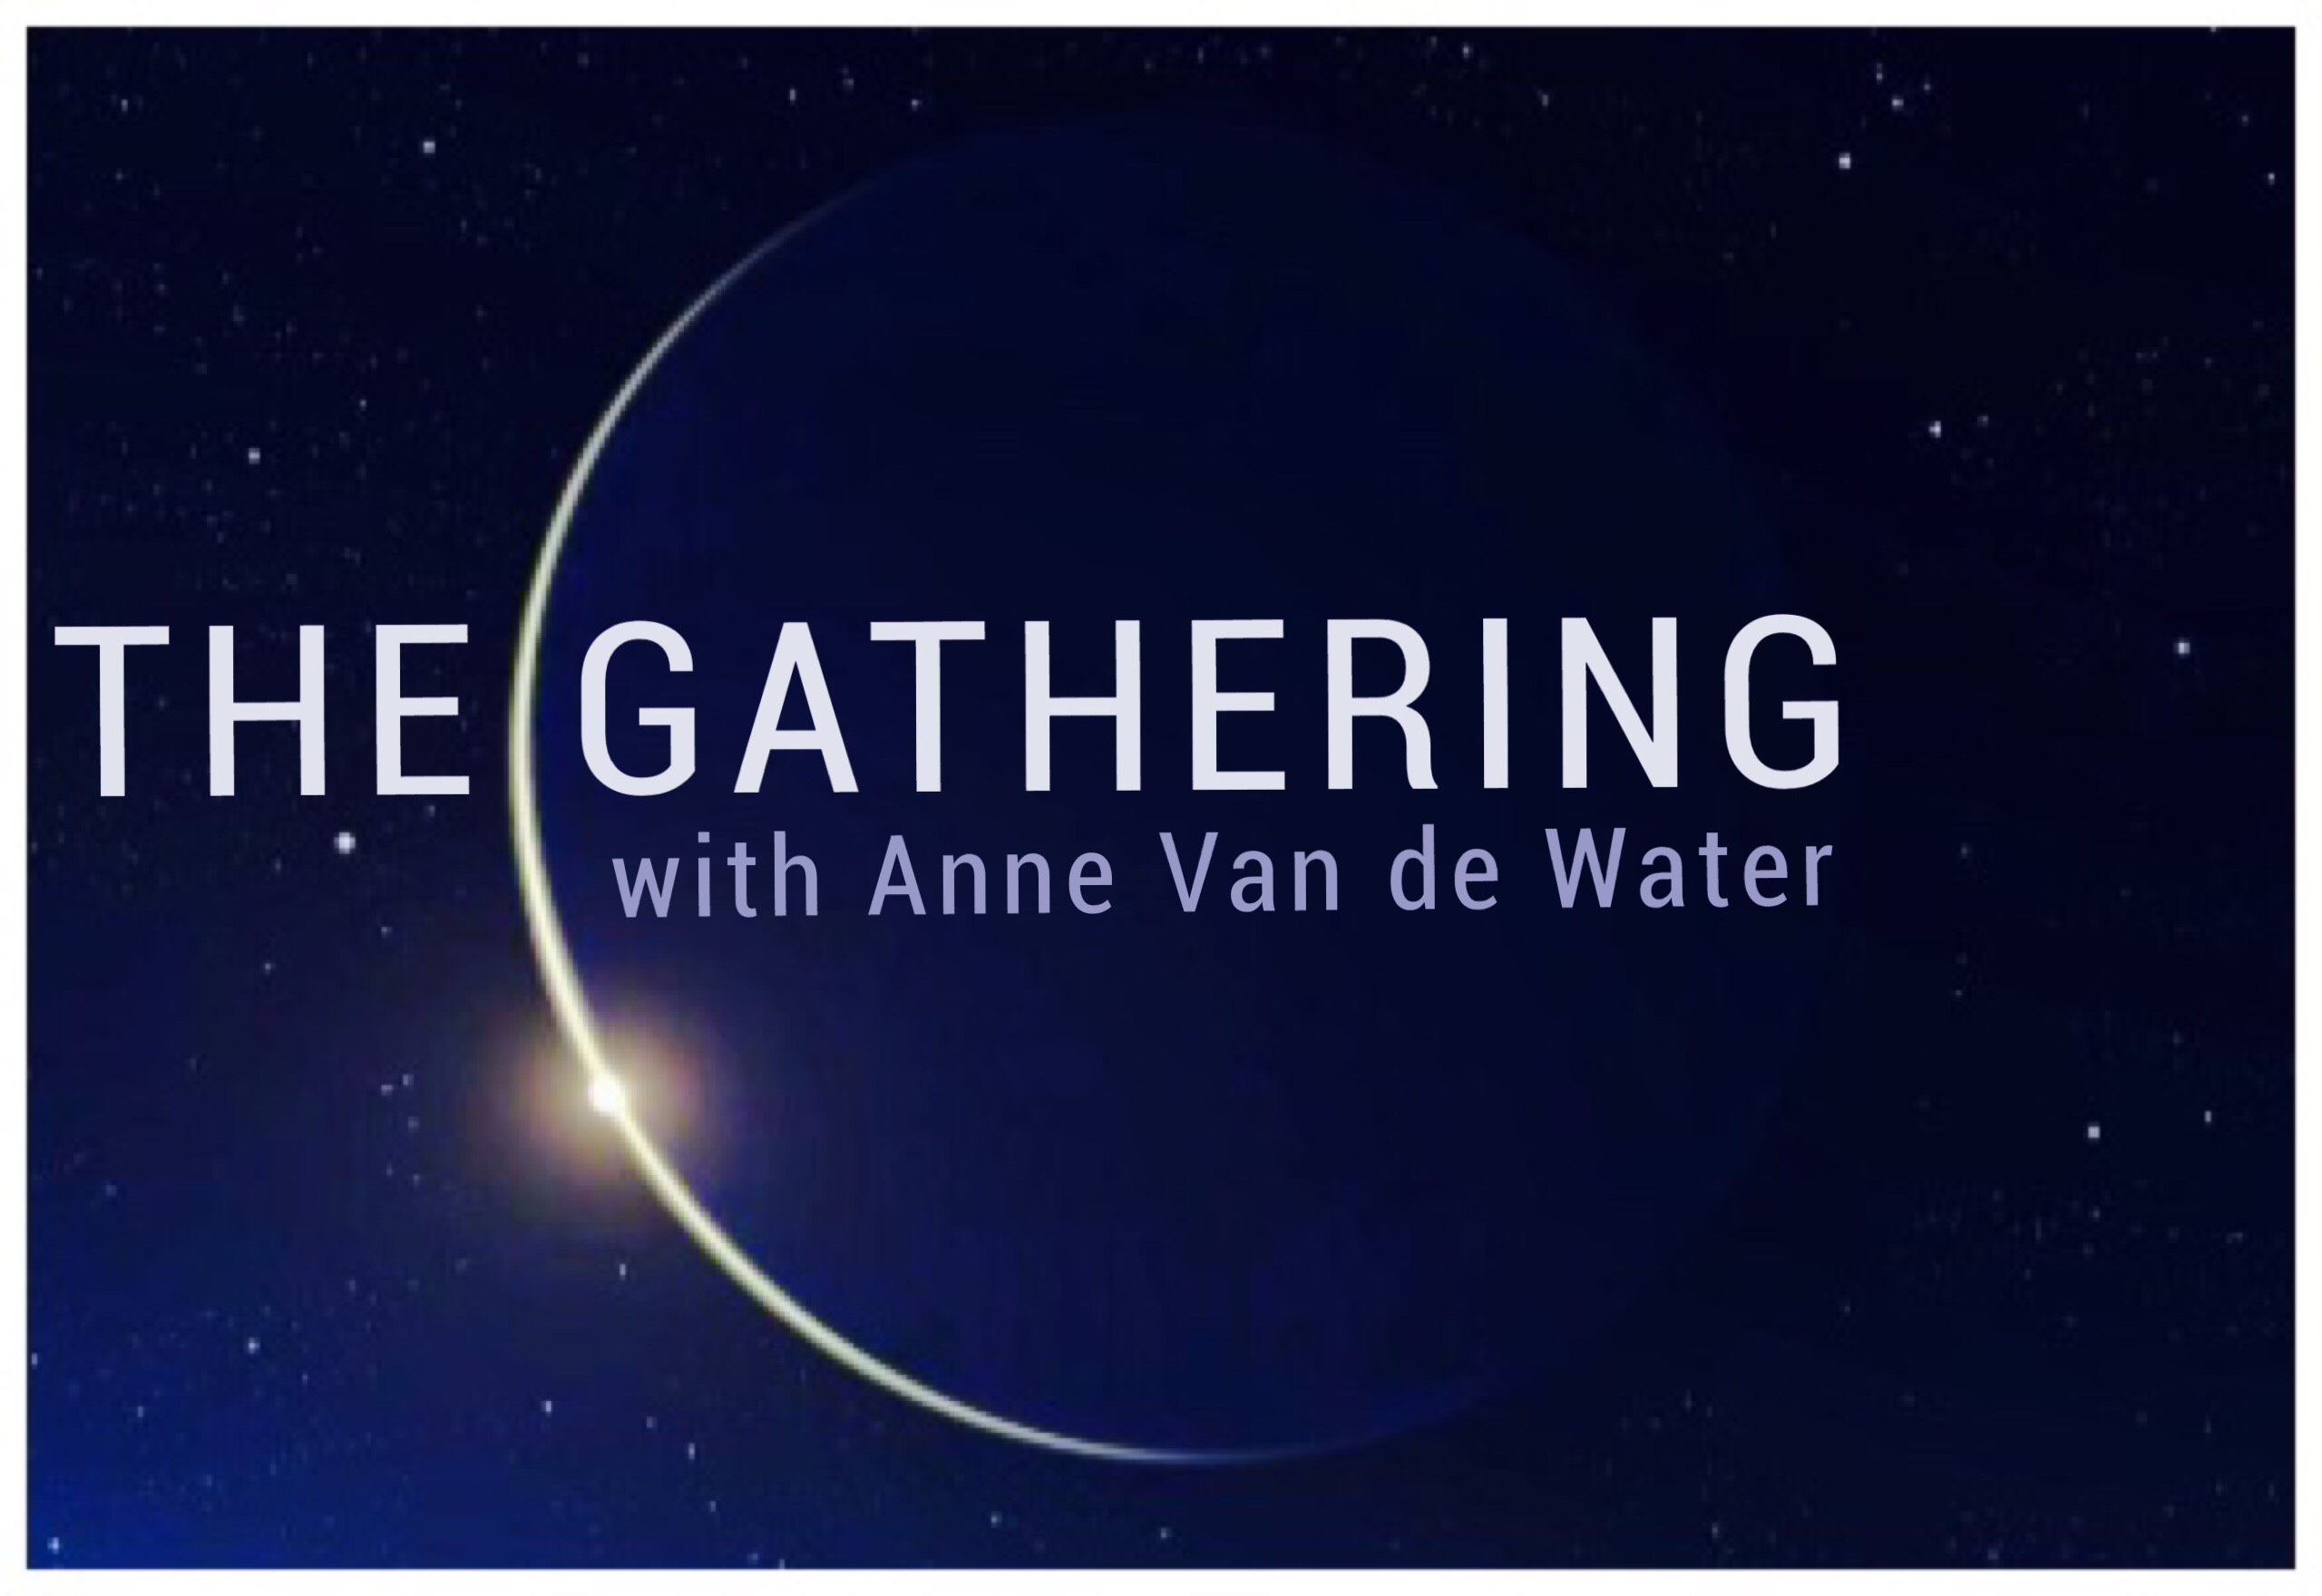 THE GATHERING - New Moon Eclipse in Pisces - Feb. 27, 2017